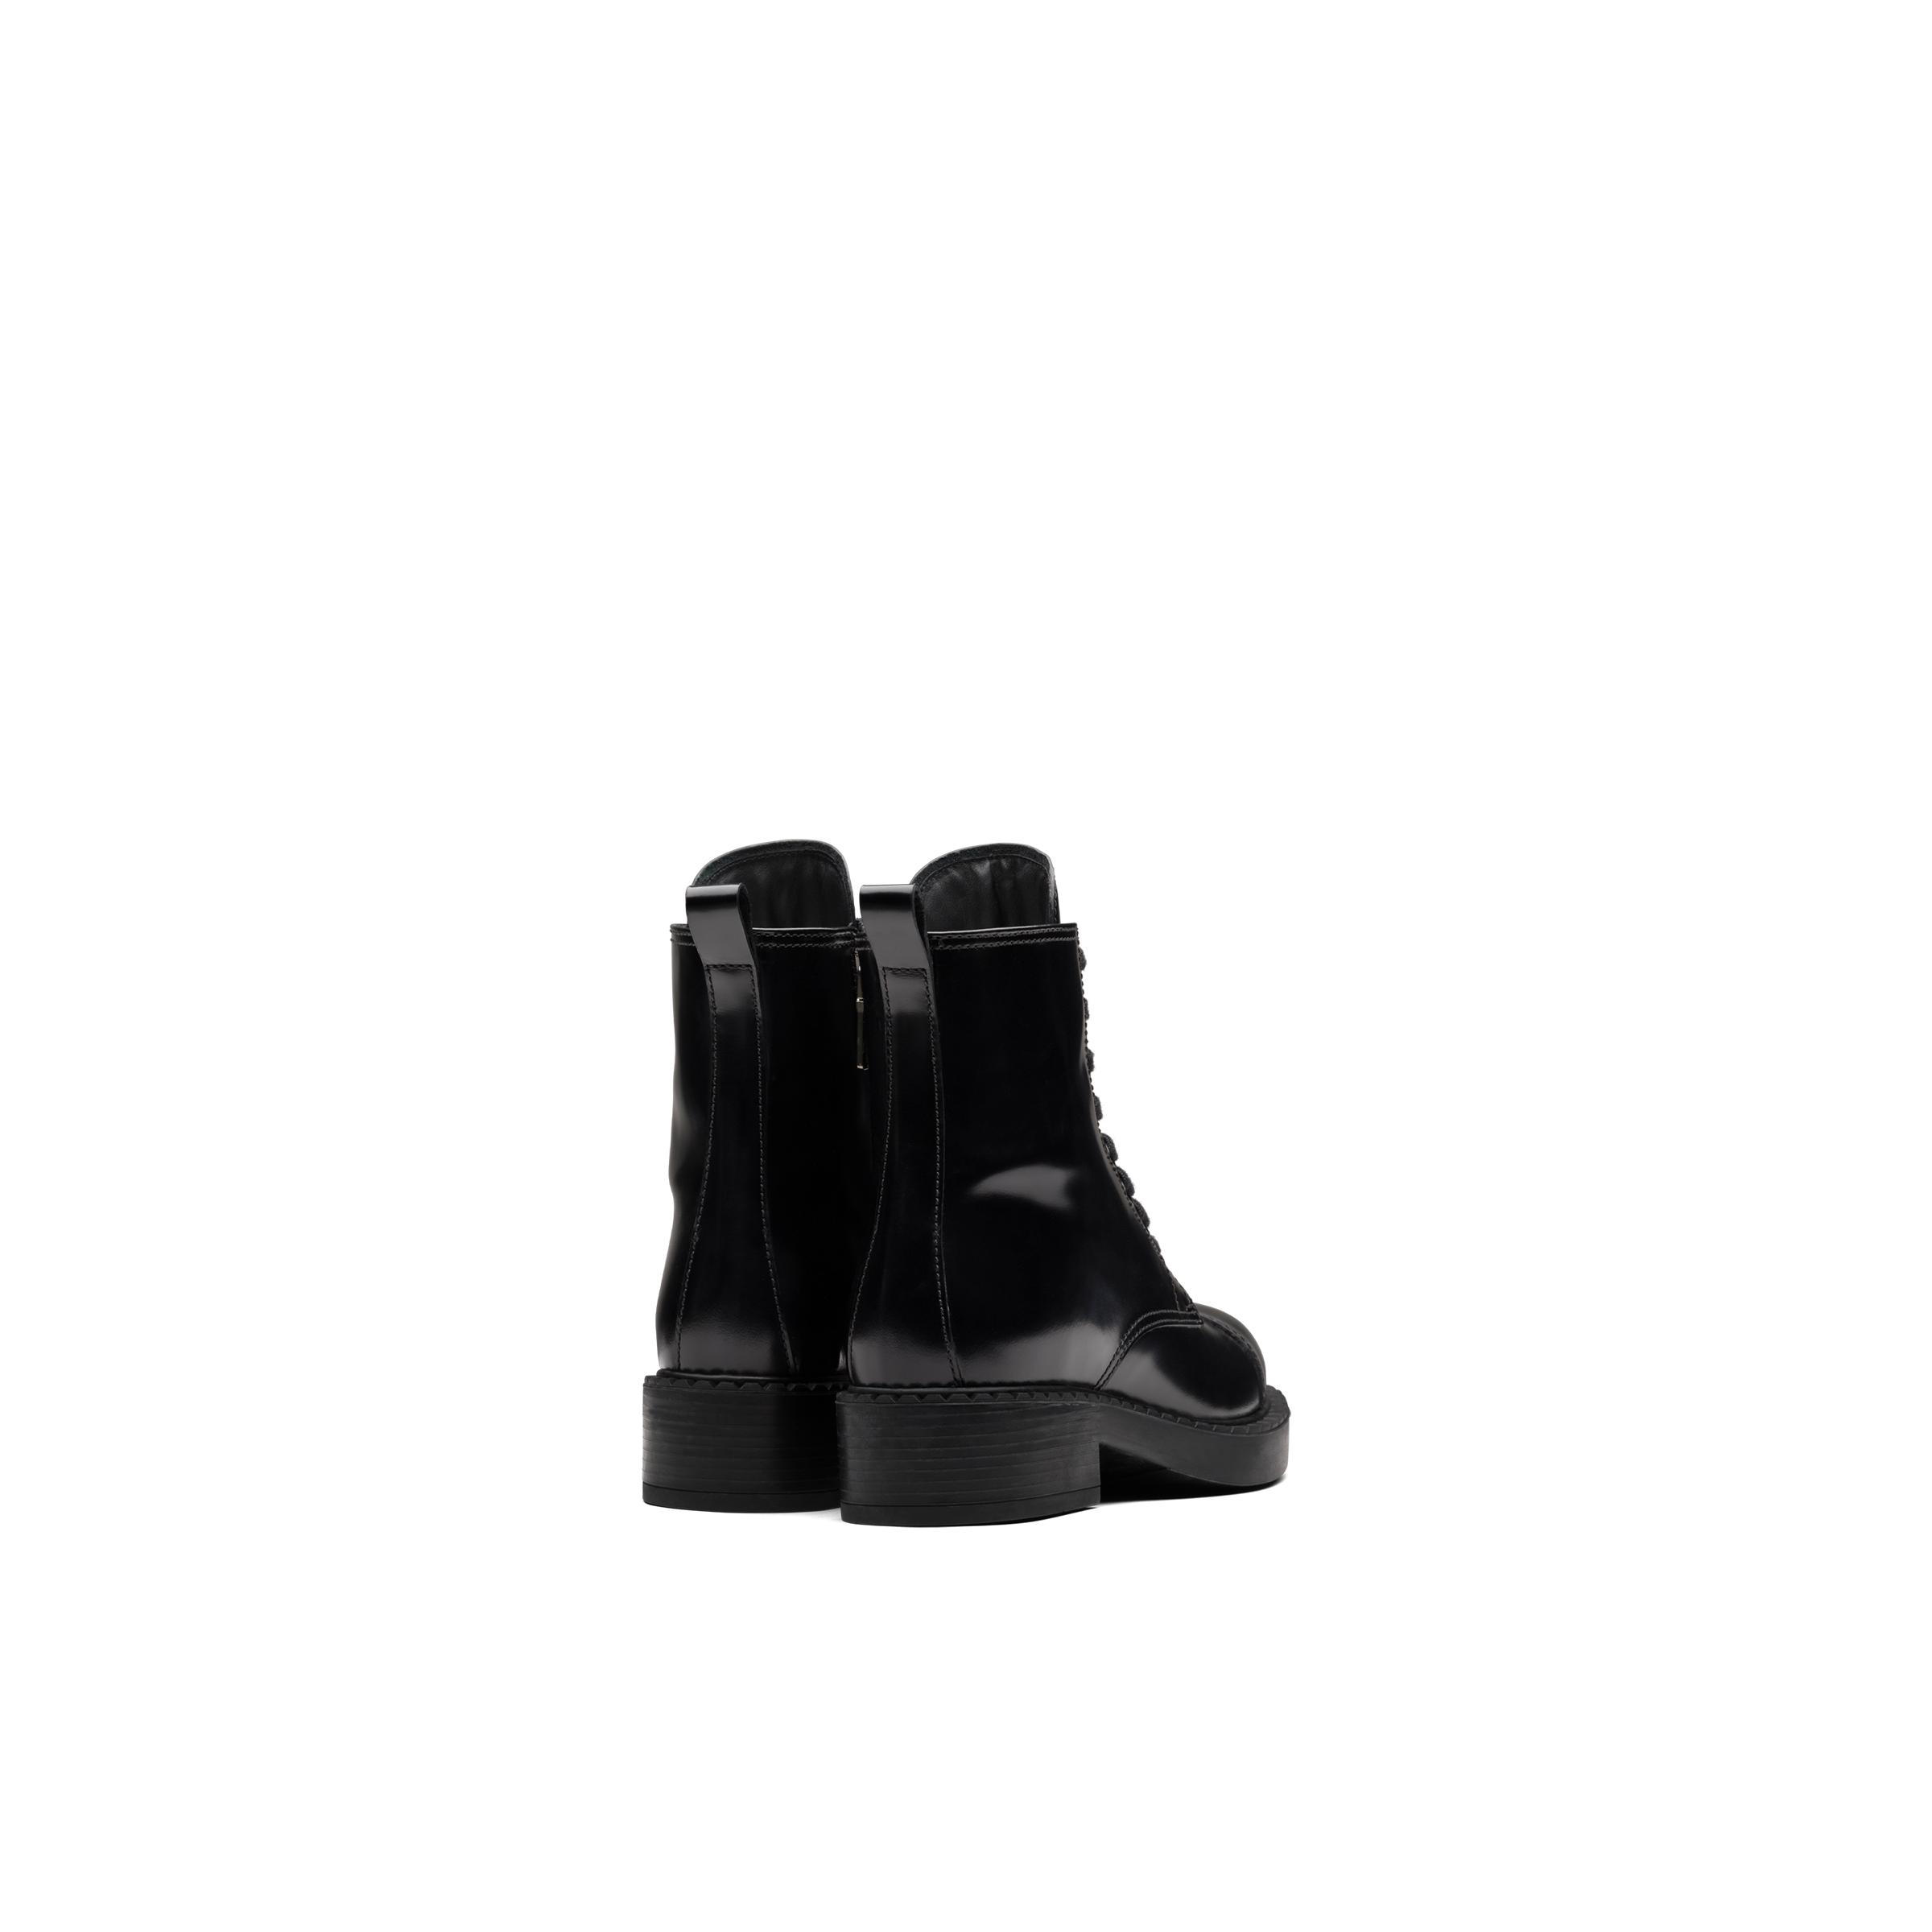 Brushed Leather Laced Booties Women Black 3